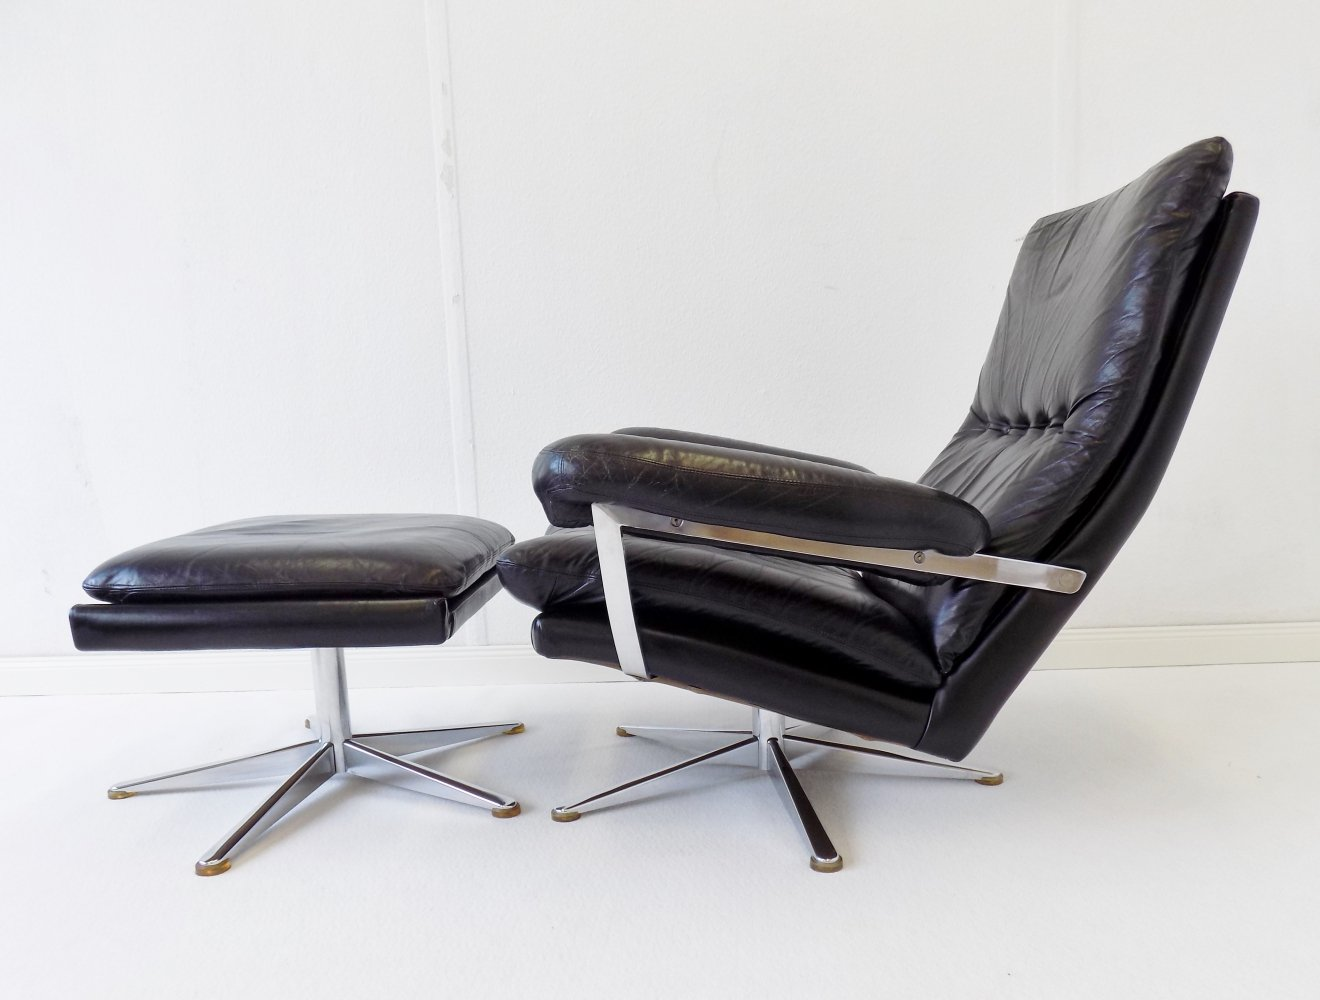 ESA black leather armchair with ottoman by Werner Langenfeld